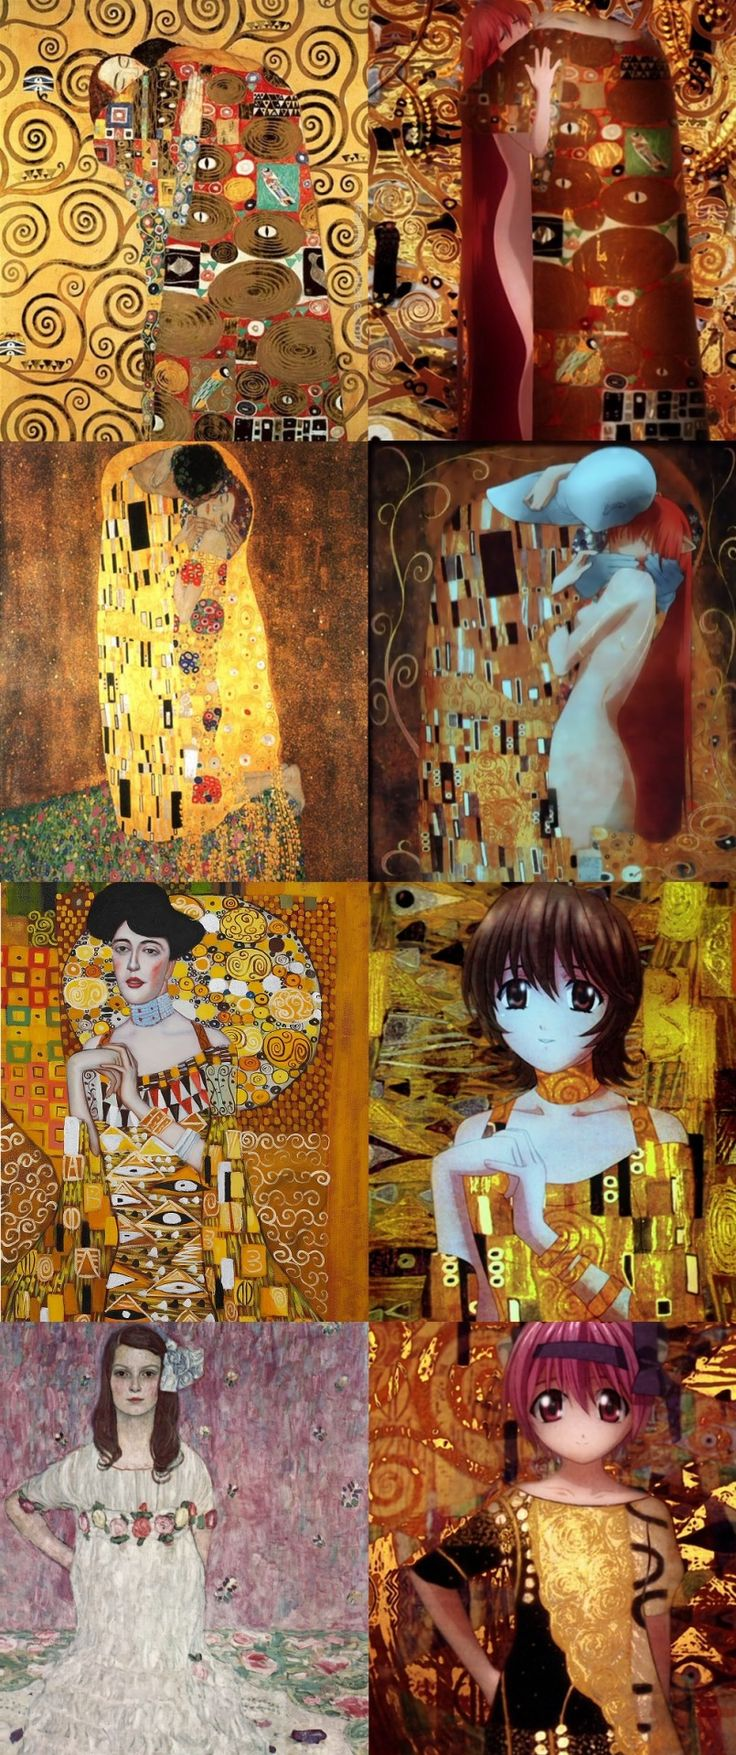 Gustav Klimt Original Artwork > Elfen Lied Opening Theme Artwork